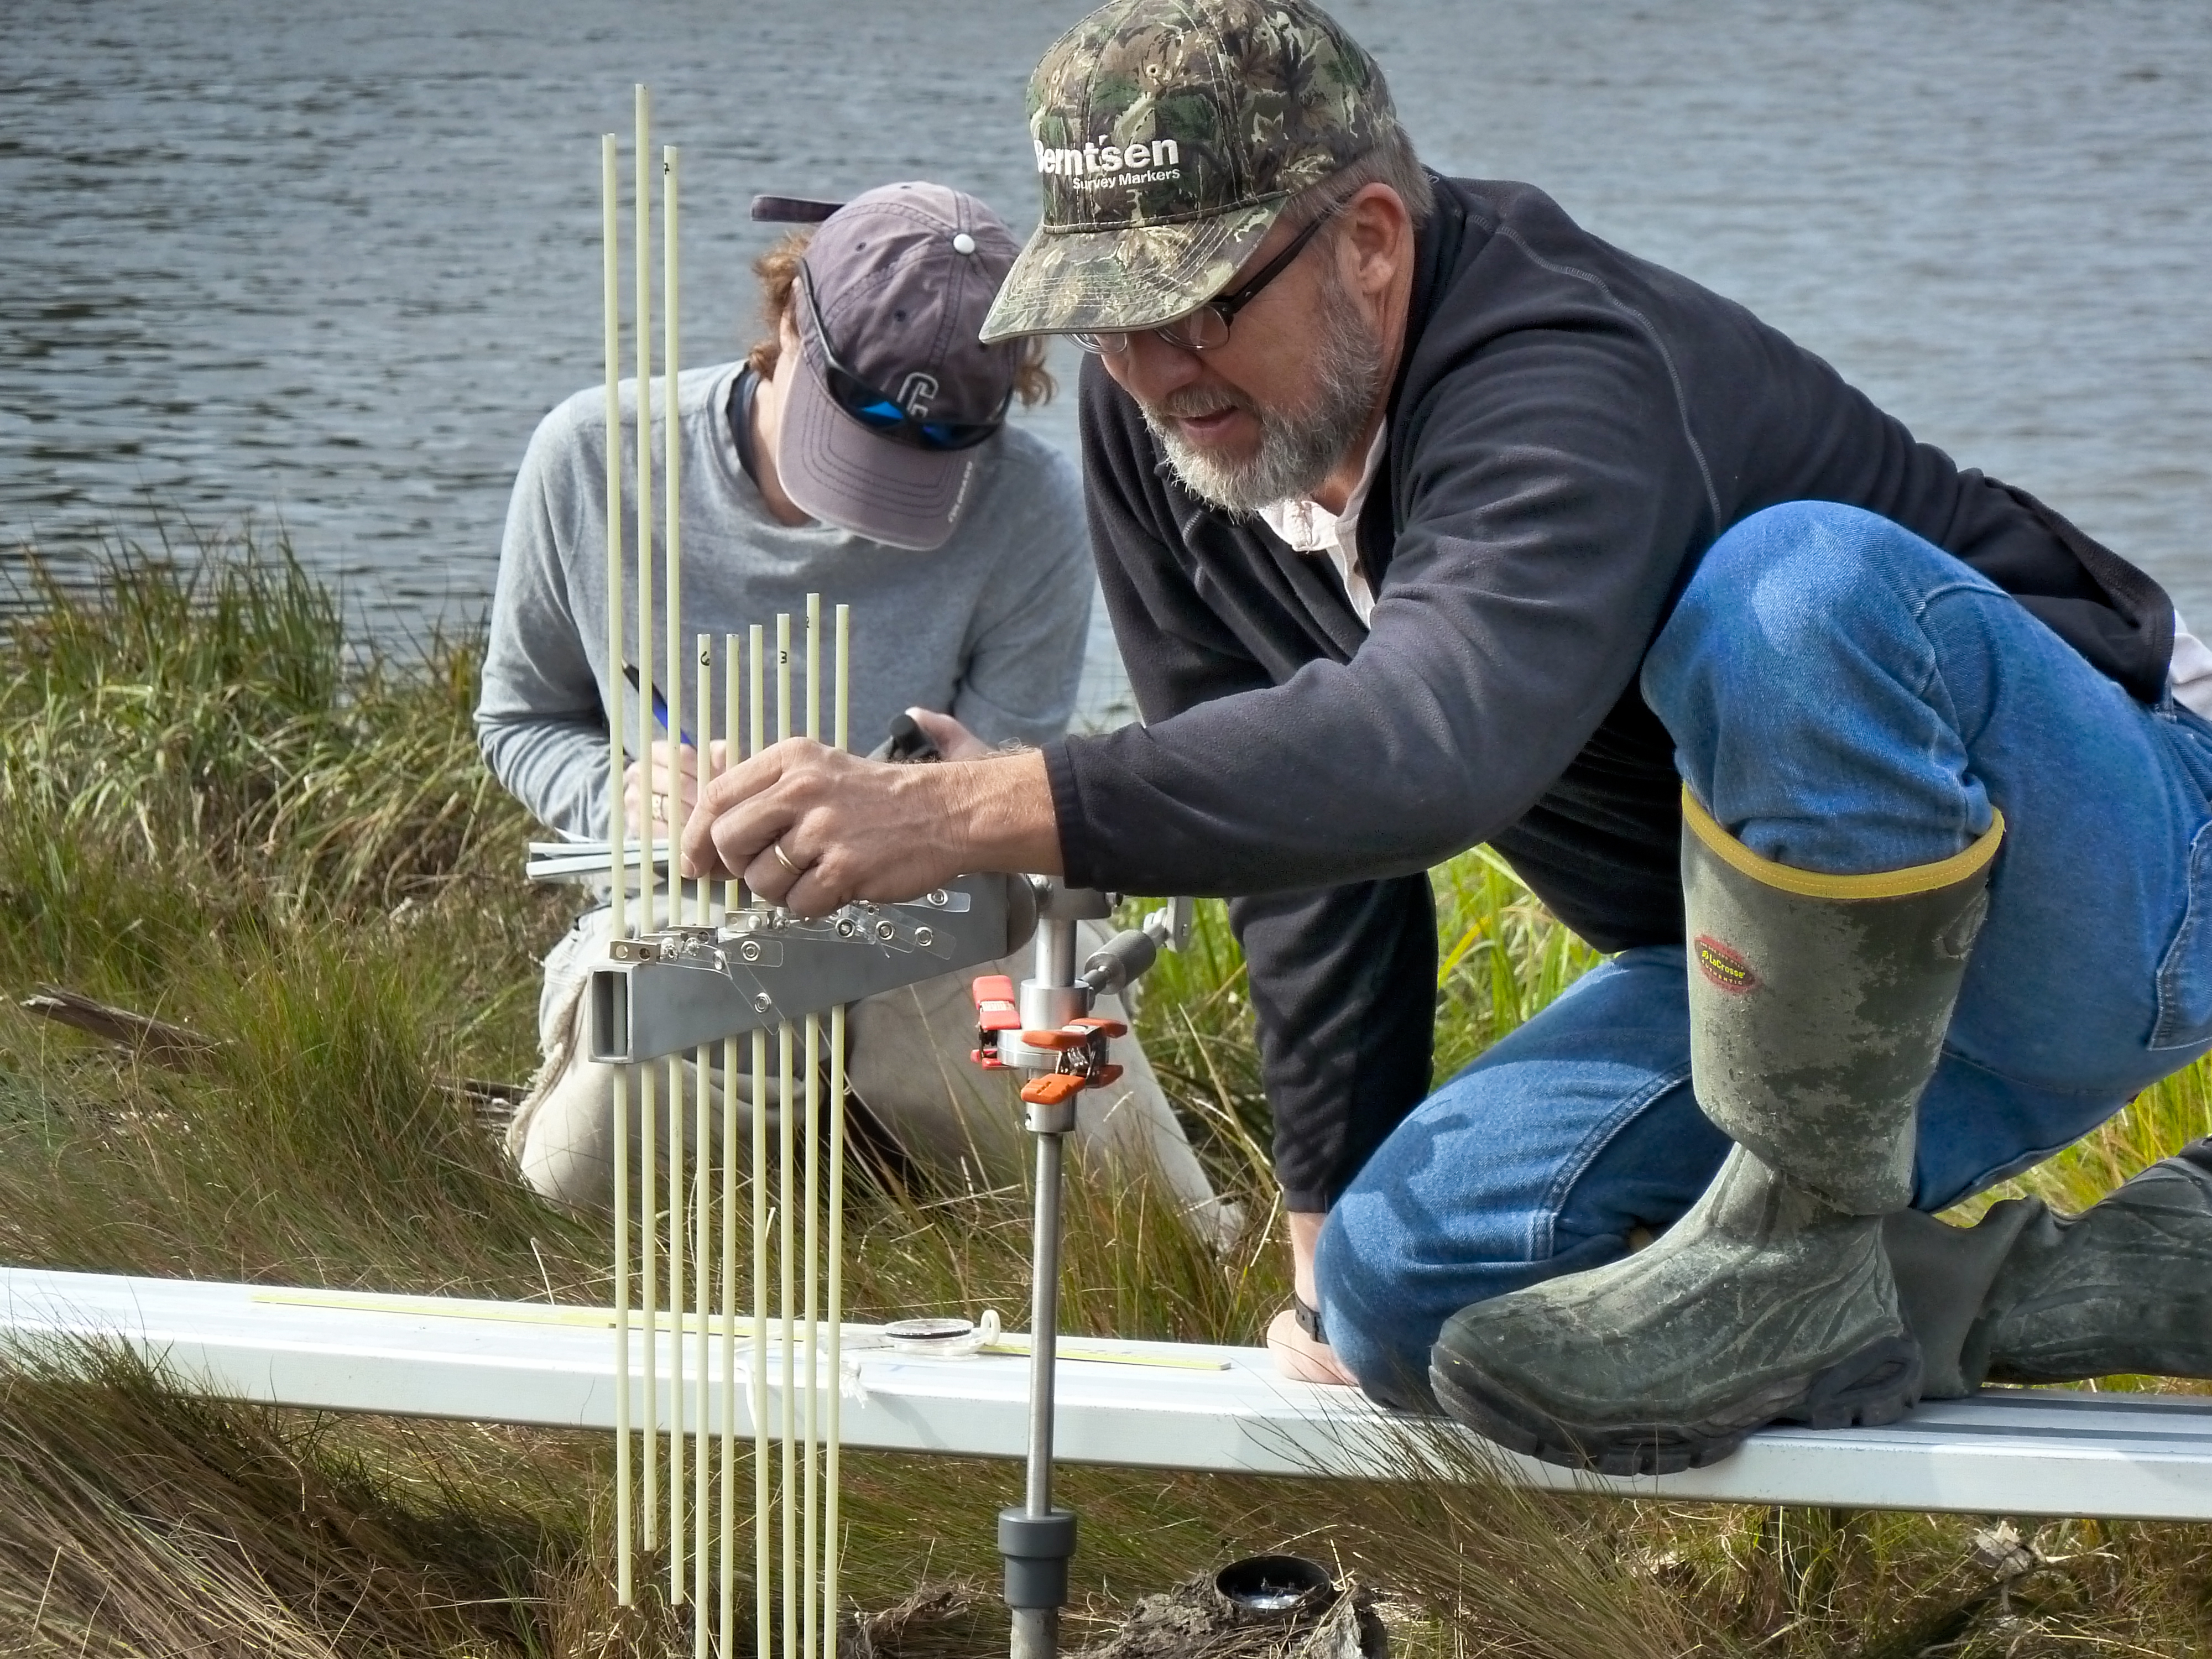 National Park Service (NPS) coastal biologist Jim Lynch uses a Surface Elevation Table (SET) to monitor the health of salt marshes. As part of an NPS monitoring program, he measures gradual elevation changes occurring on the surface of salt marshes. NPS photo.